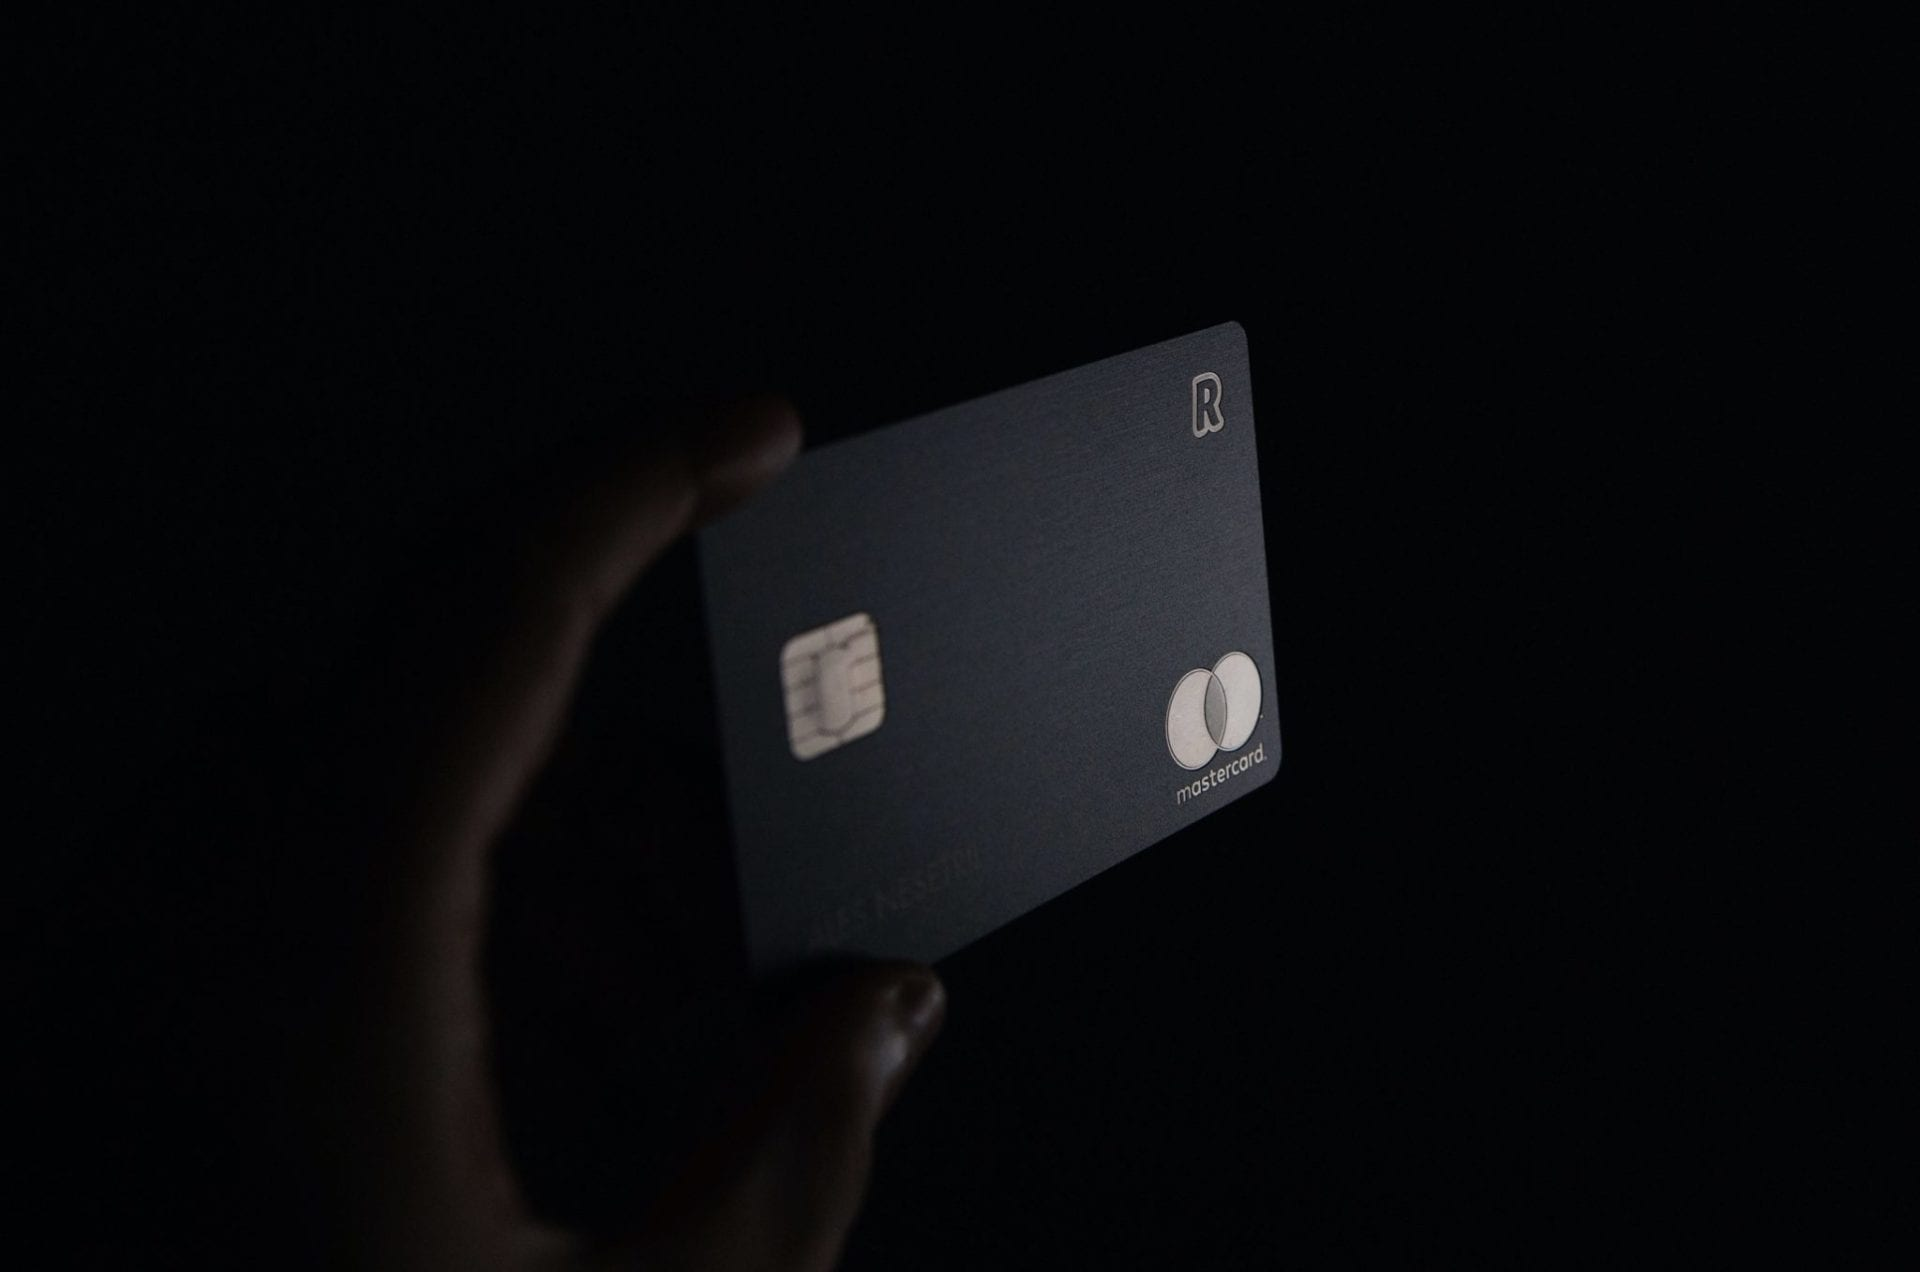 black credit card in hands